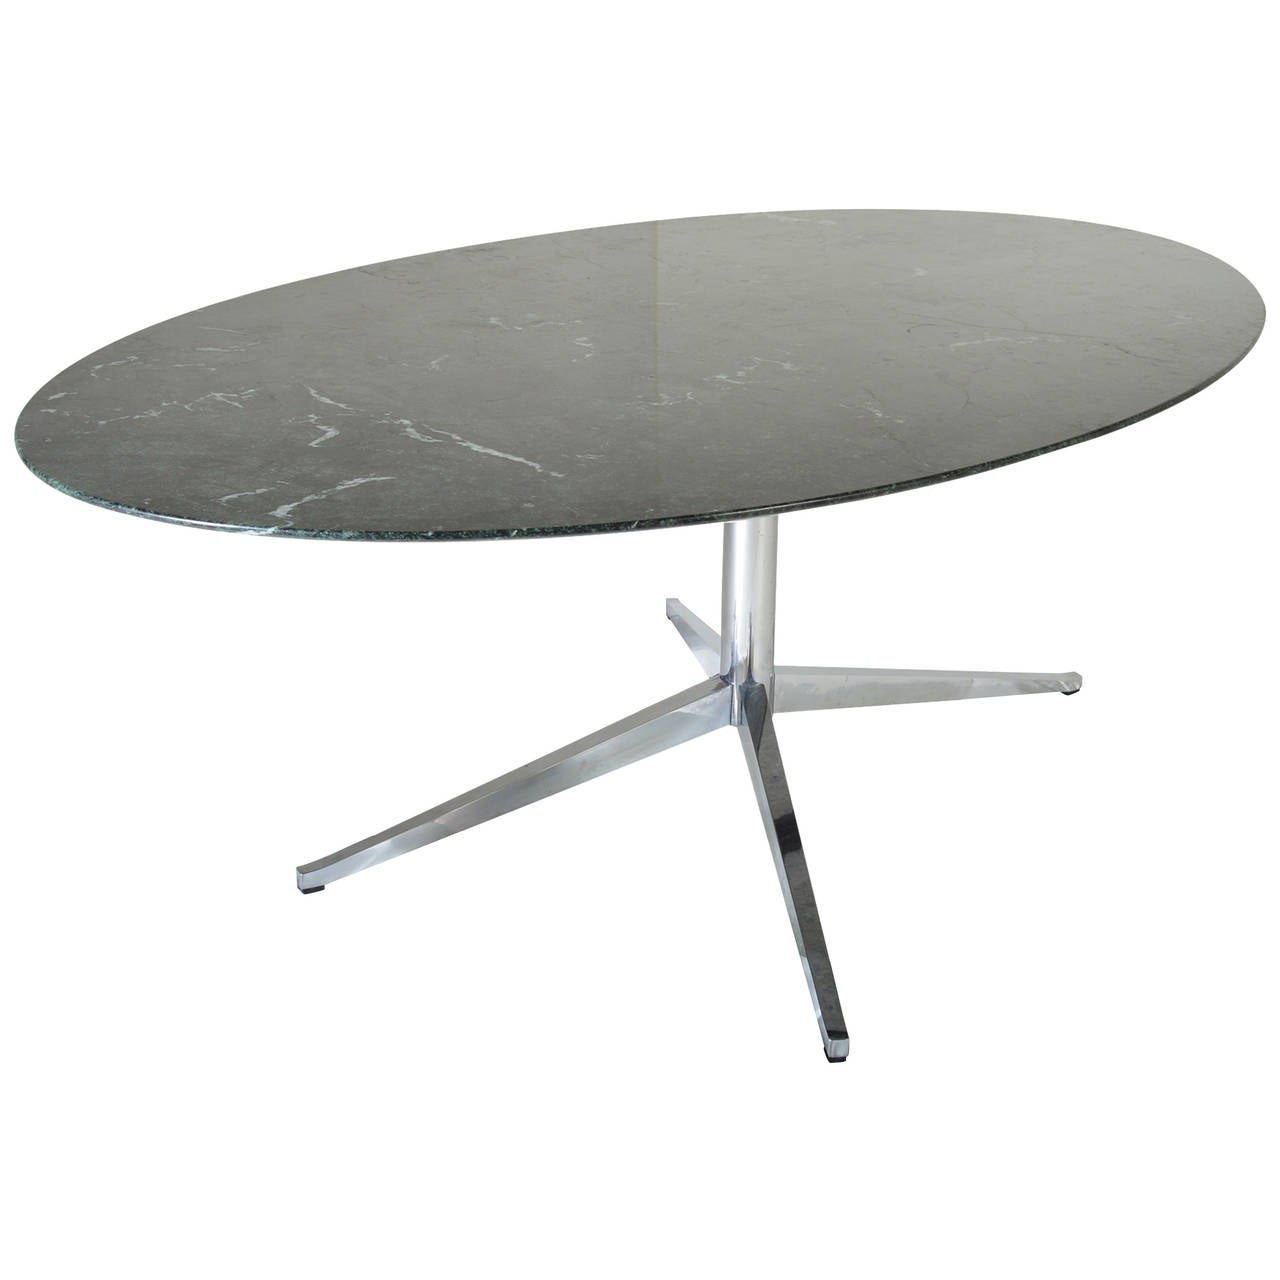 Verde Marble Oval Dining Table By Florence Knoll For Knoll